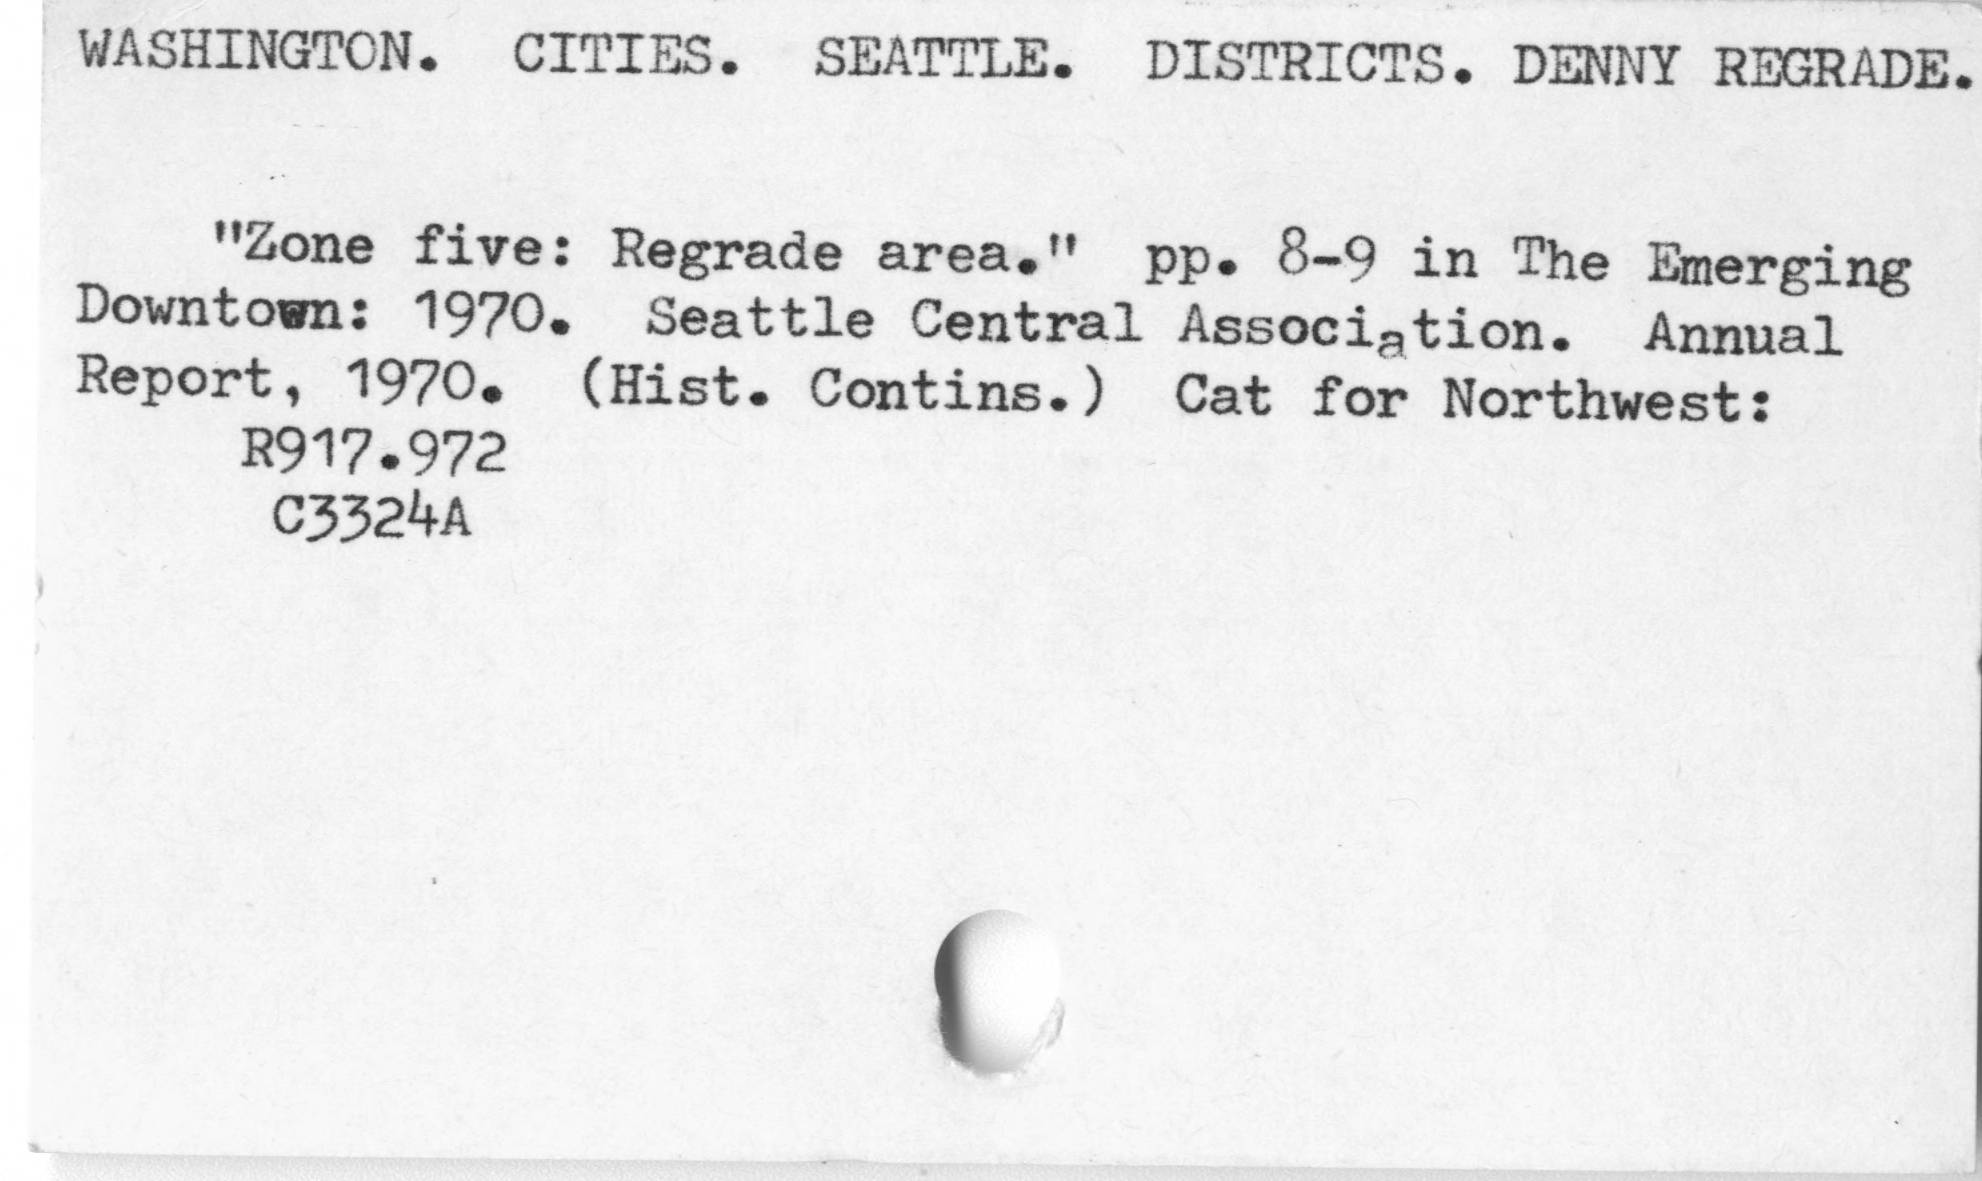 Seattle. Districts. Denny Regrade.